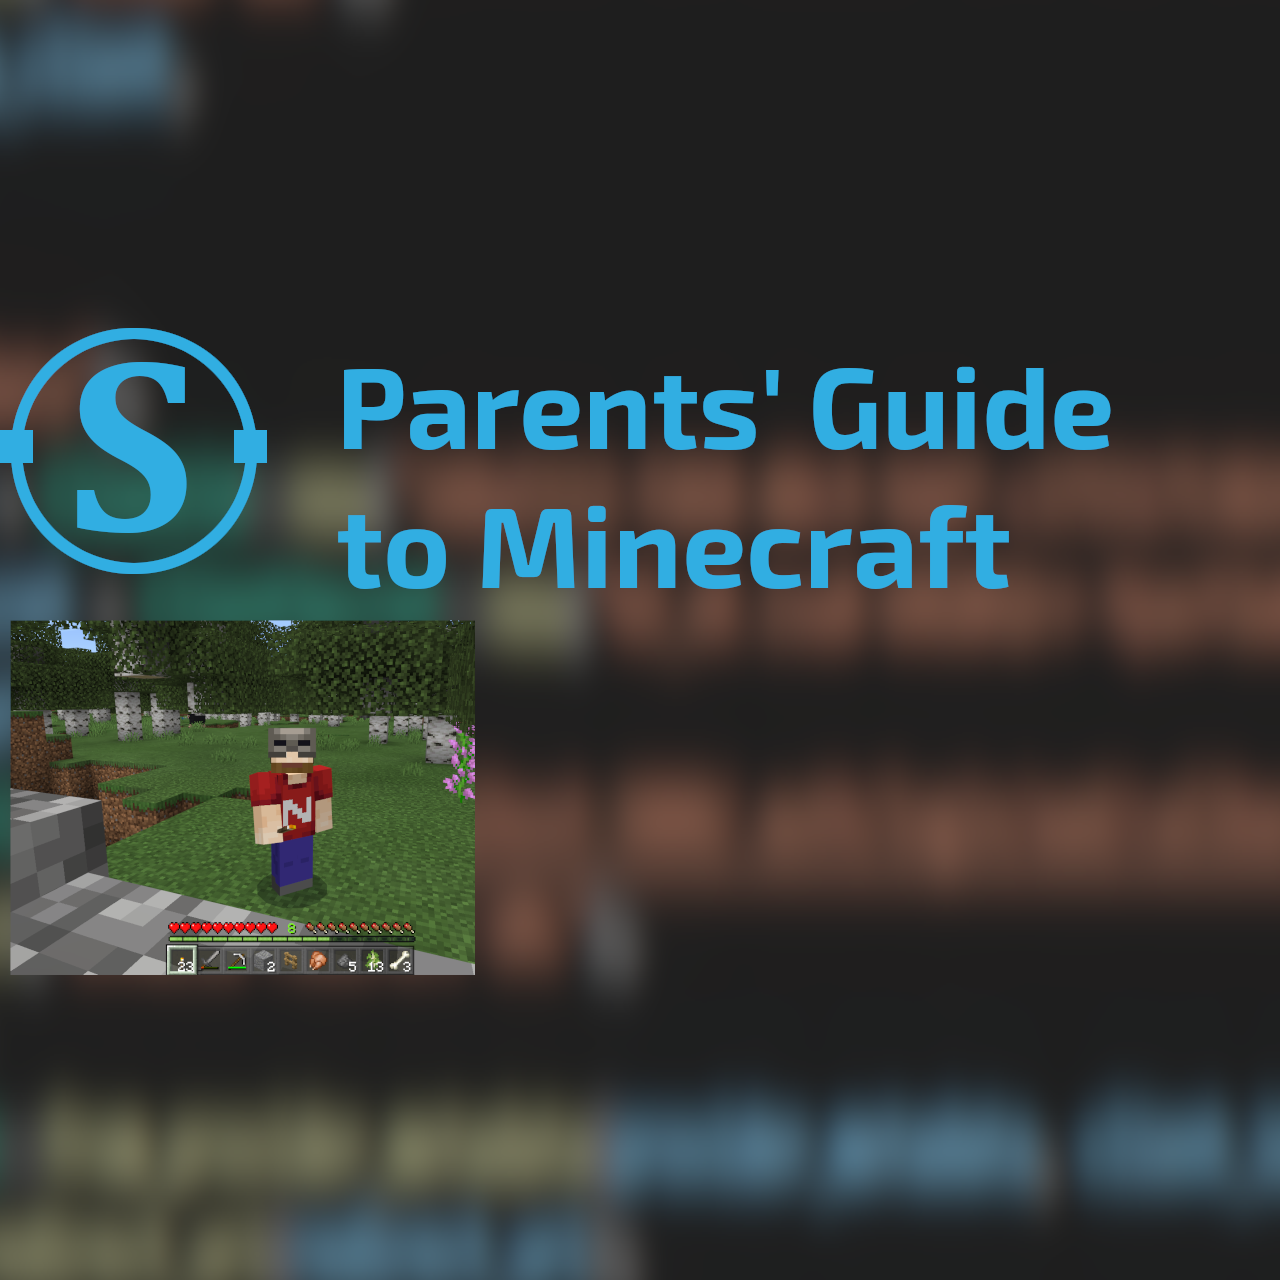 A parents' guide to Minecraft